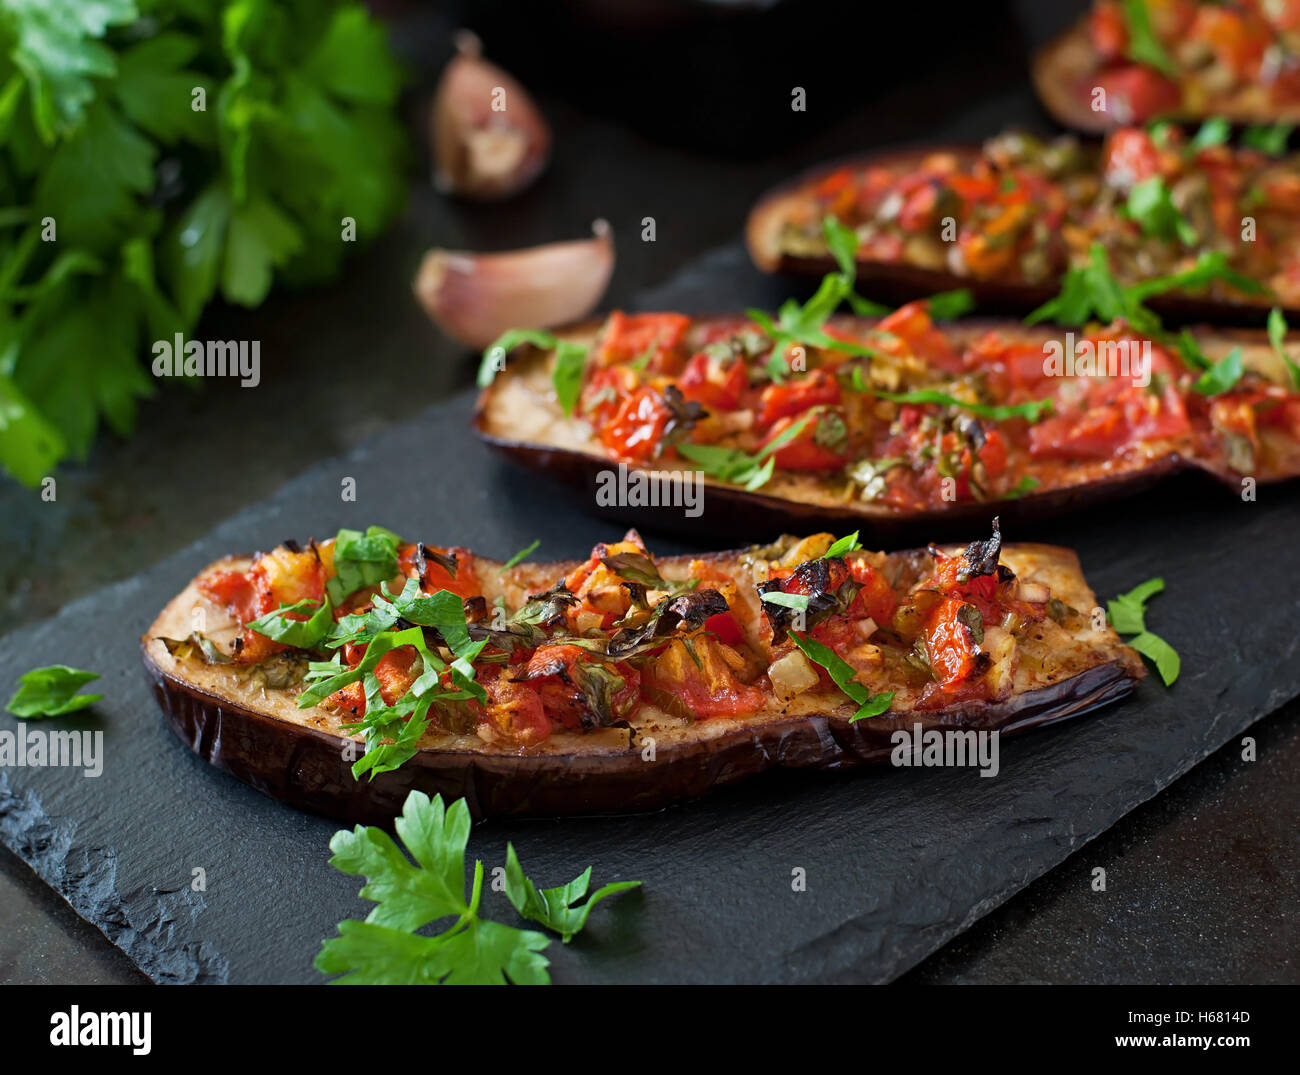 Baked eggplant with tomatoes, garlic and paprika - Stock Image